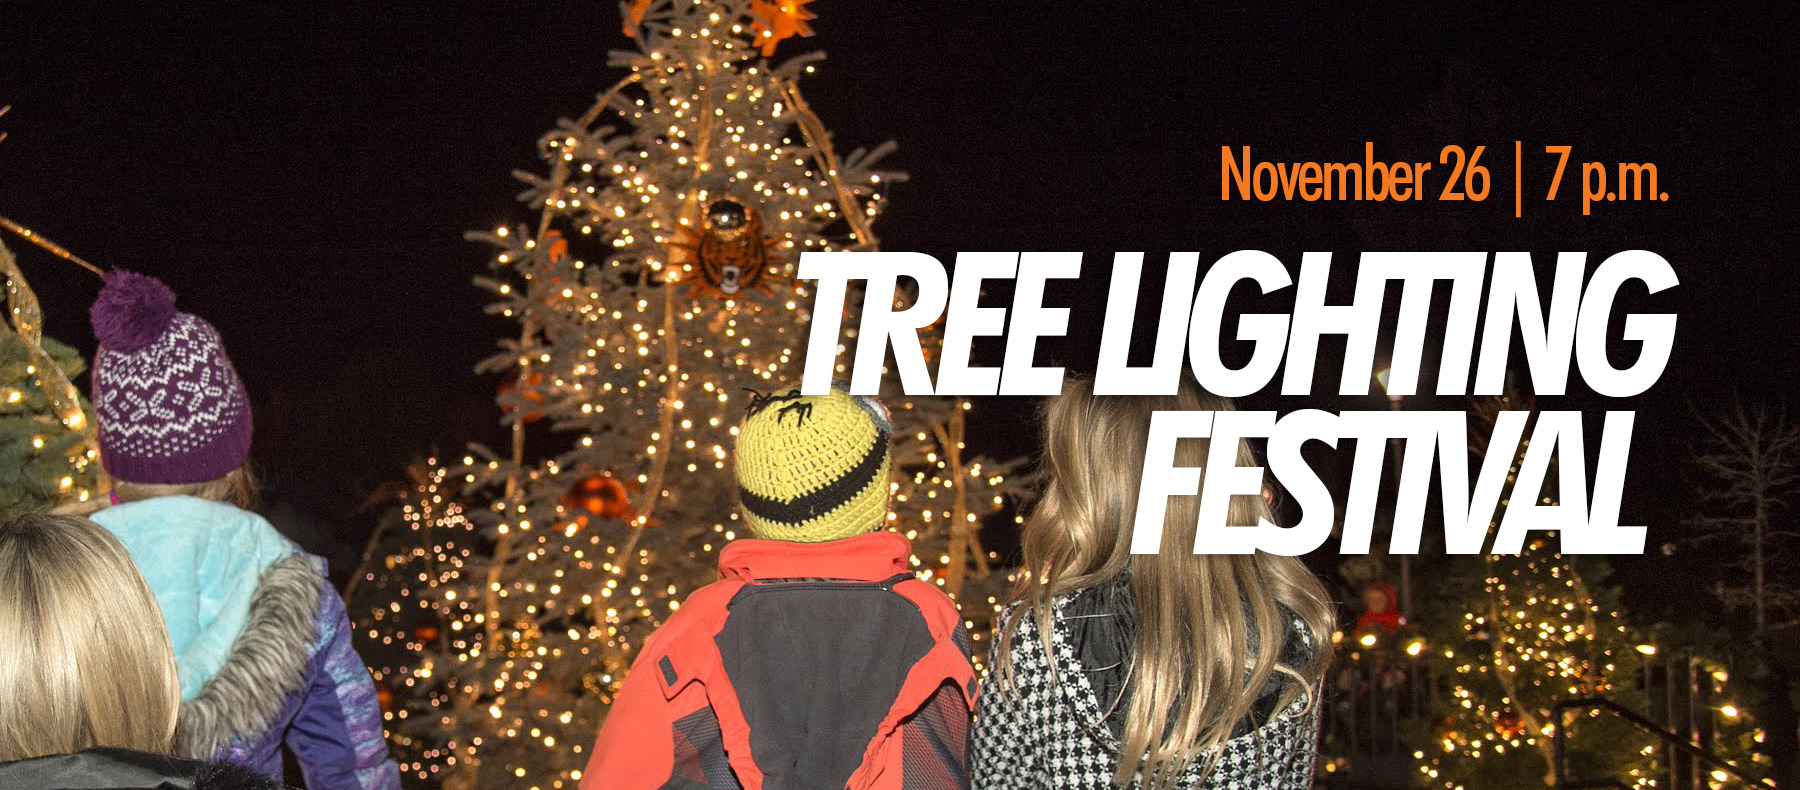 Nov. 26 | 7 p.m. Tree Lighting Festival